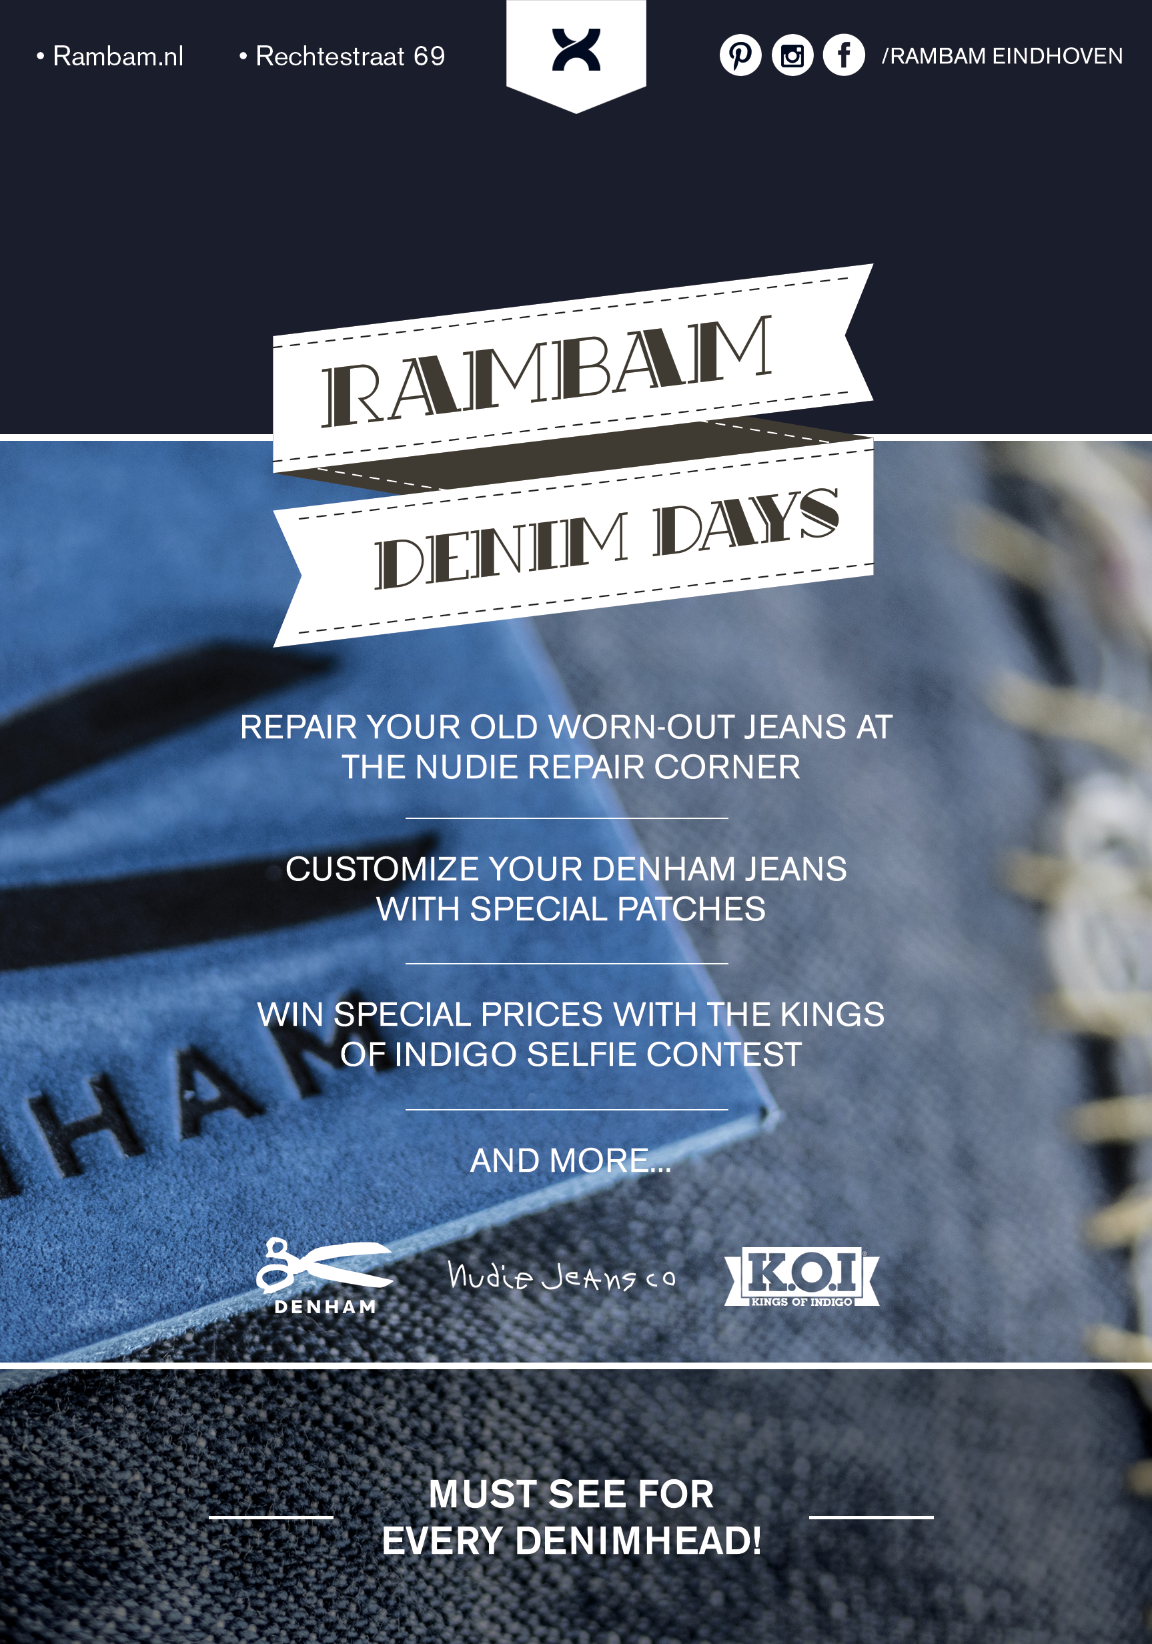 rambam store winkel eindhoven long john blog denim days 2016 september blue denham kings of indigo nudie jeans (1)